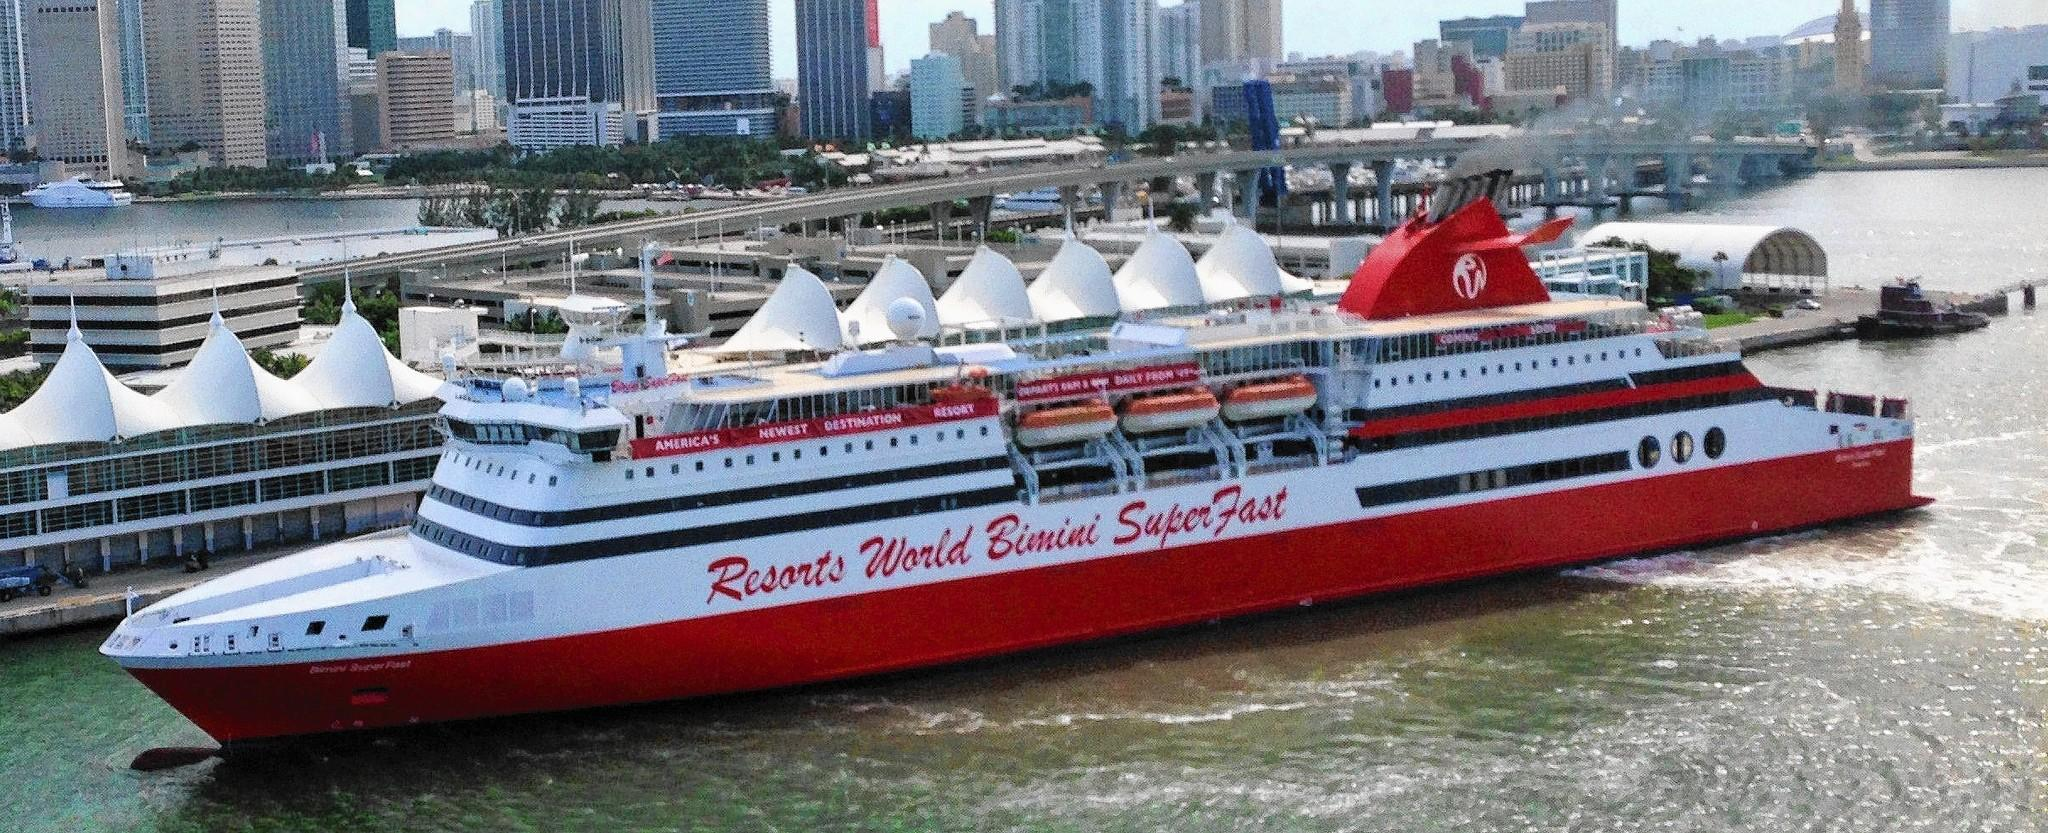 casino cruise fort lauderdale